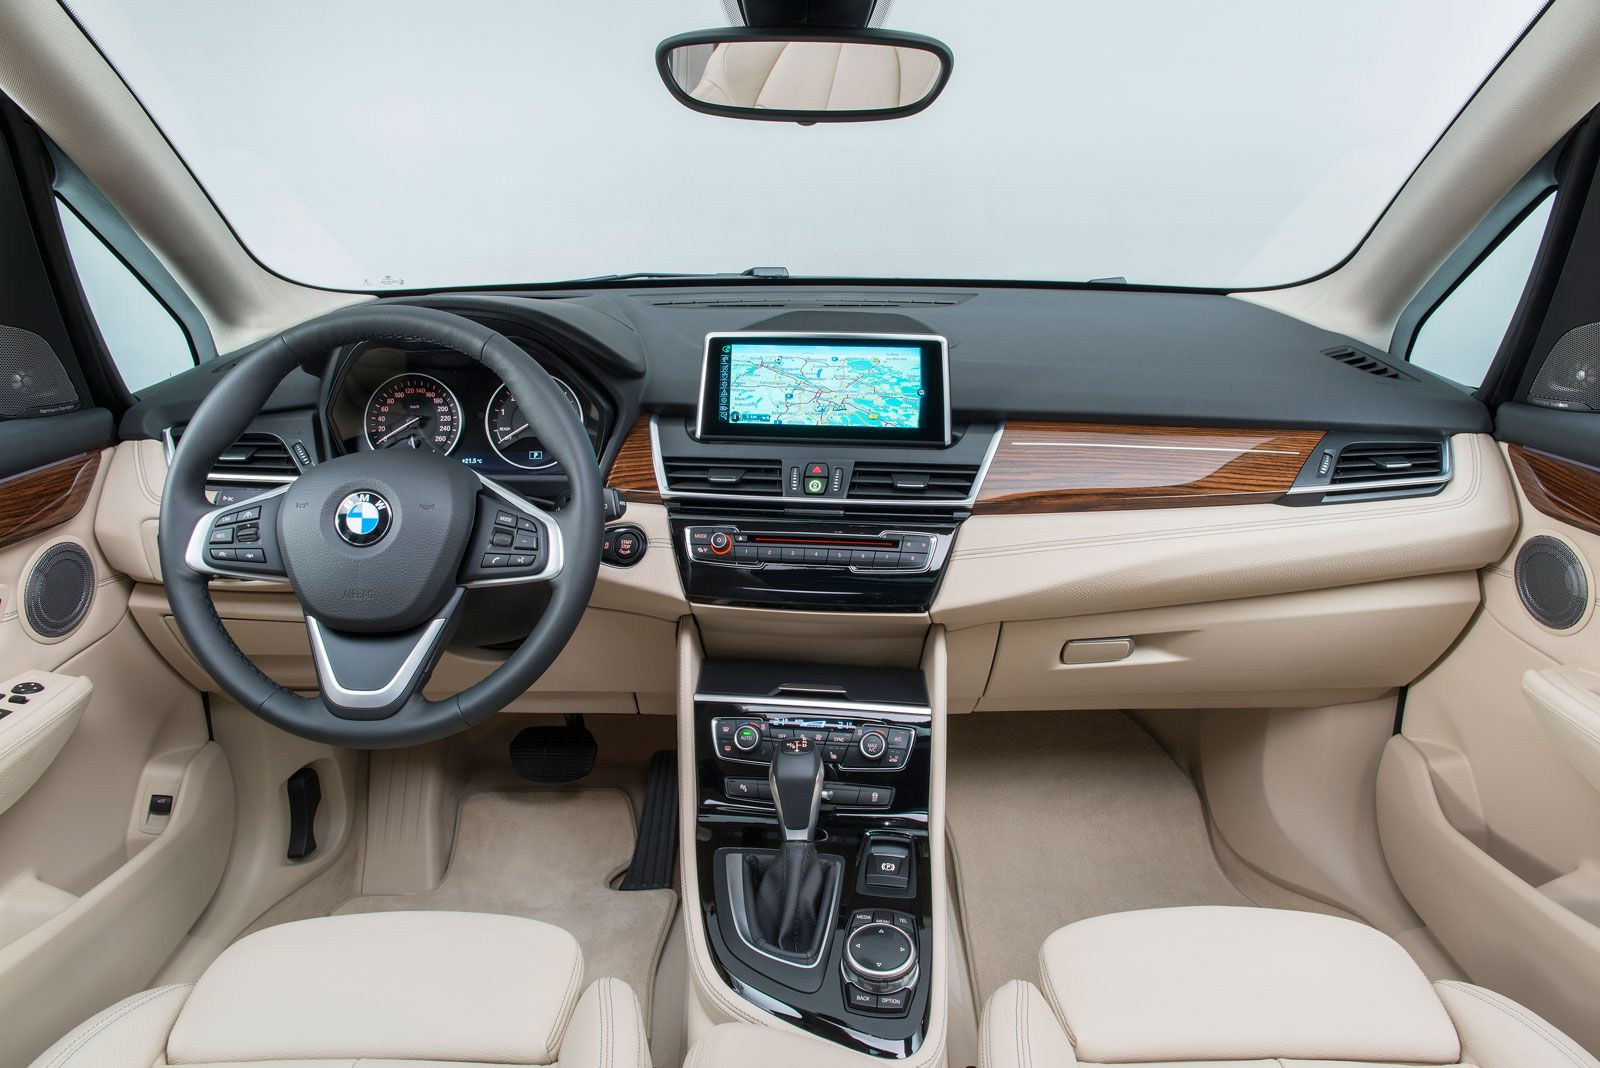 Bmw 2 Series Active Tourer Interior Car Body Design Tourer